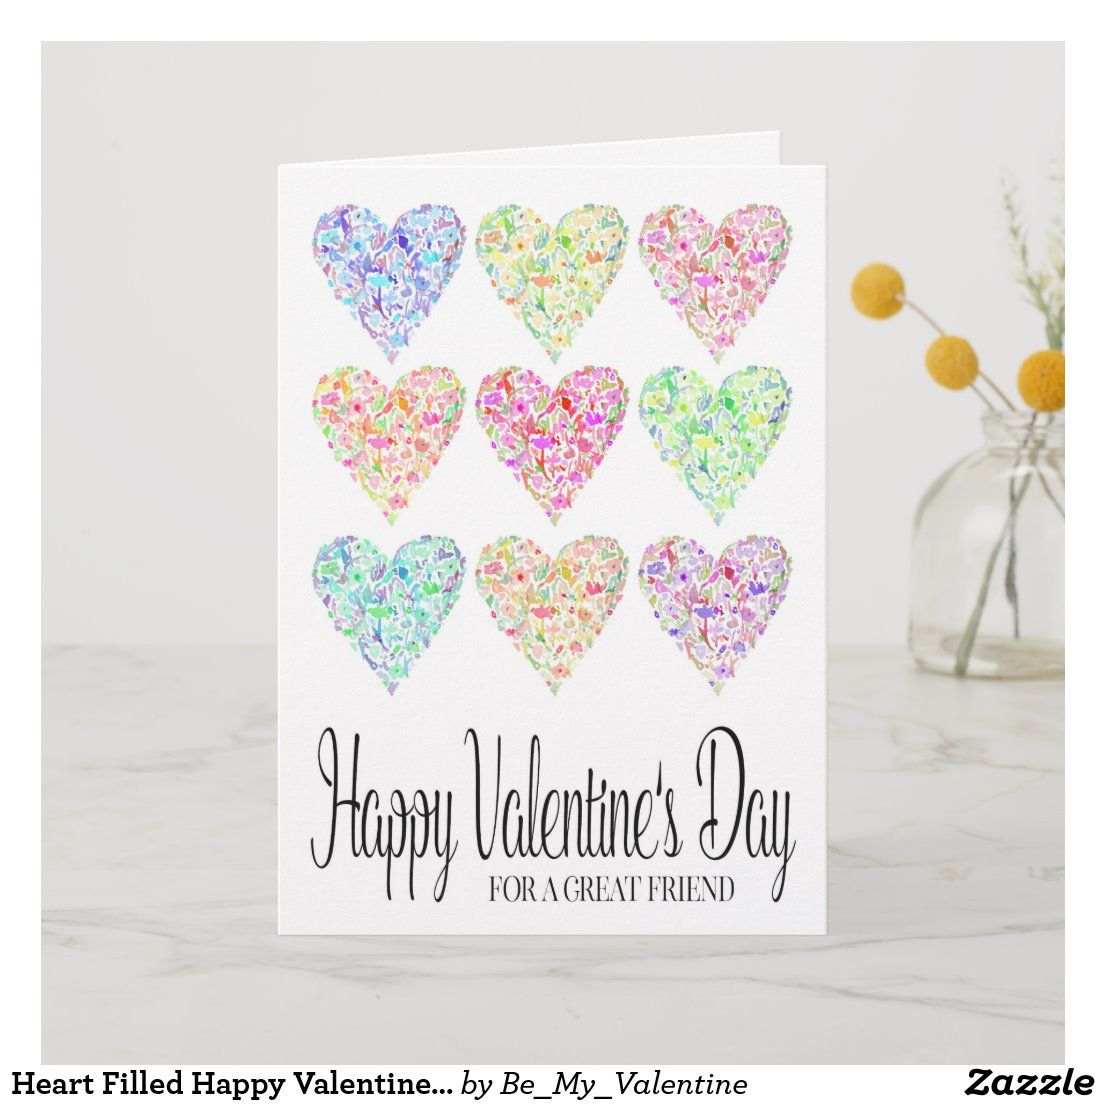 Heart Filled Happy Valentine's Day Friend Card